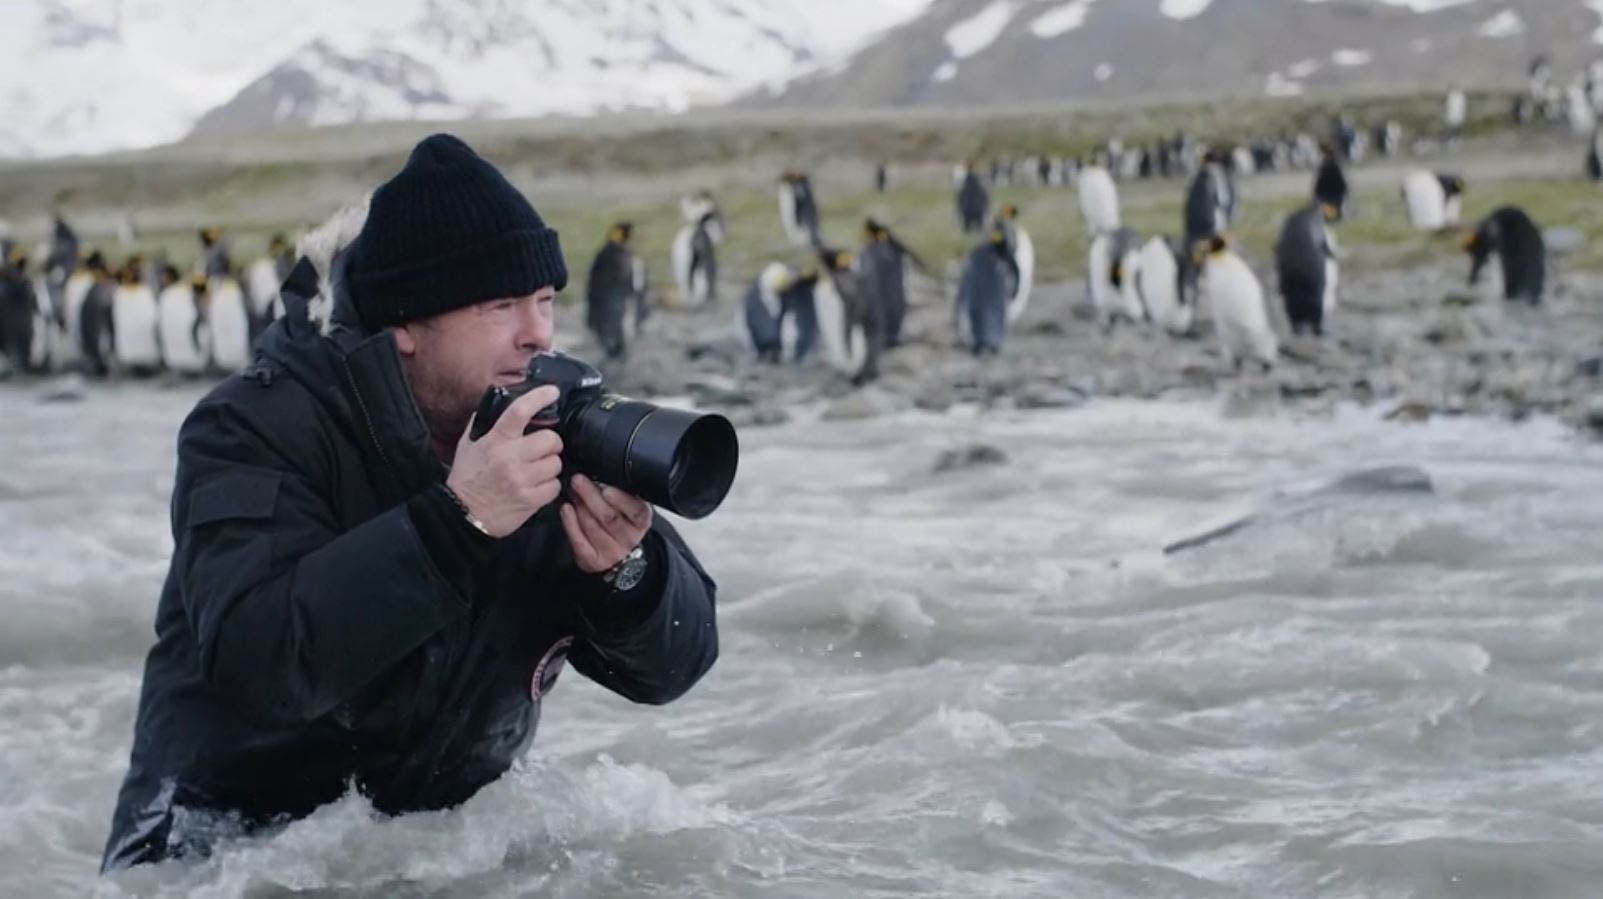 Masters of Photography Masterclass with David Yarrow Out Soon